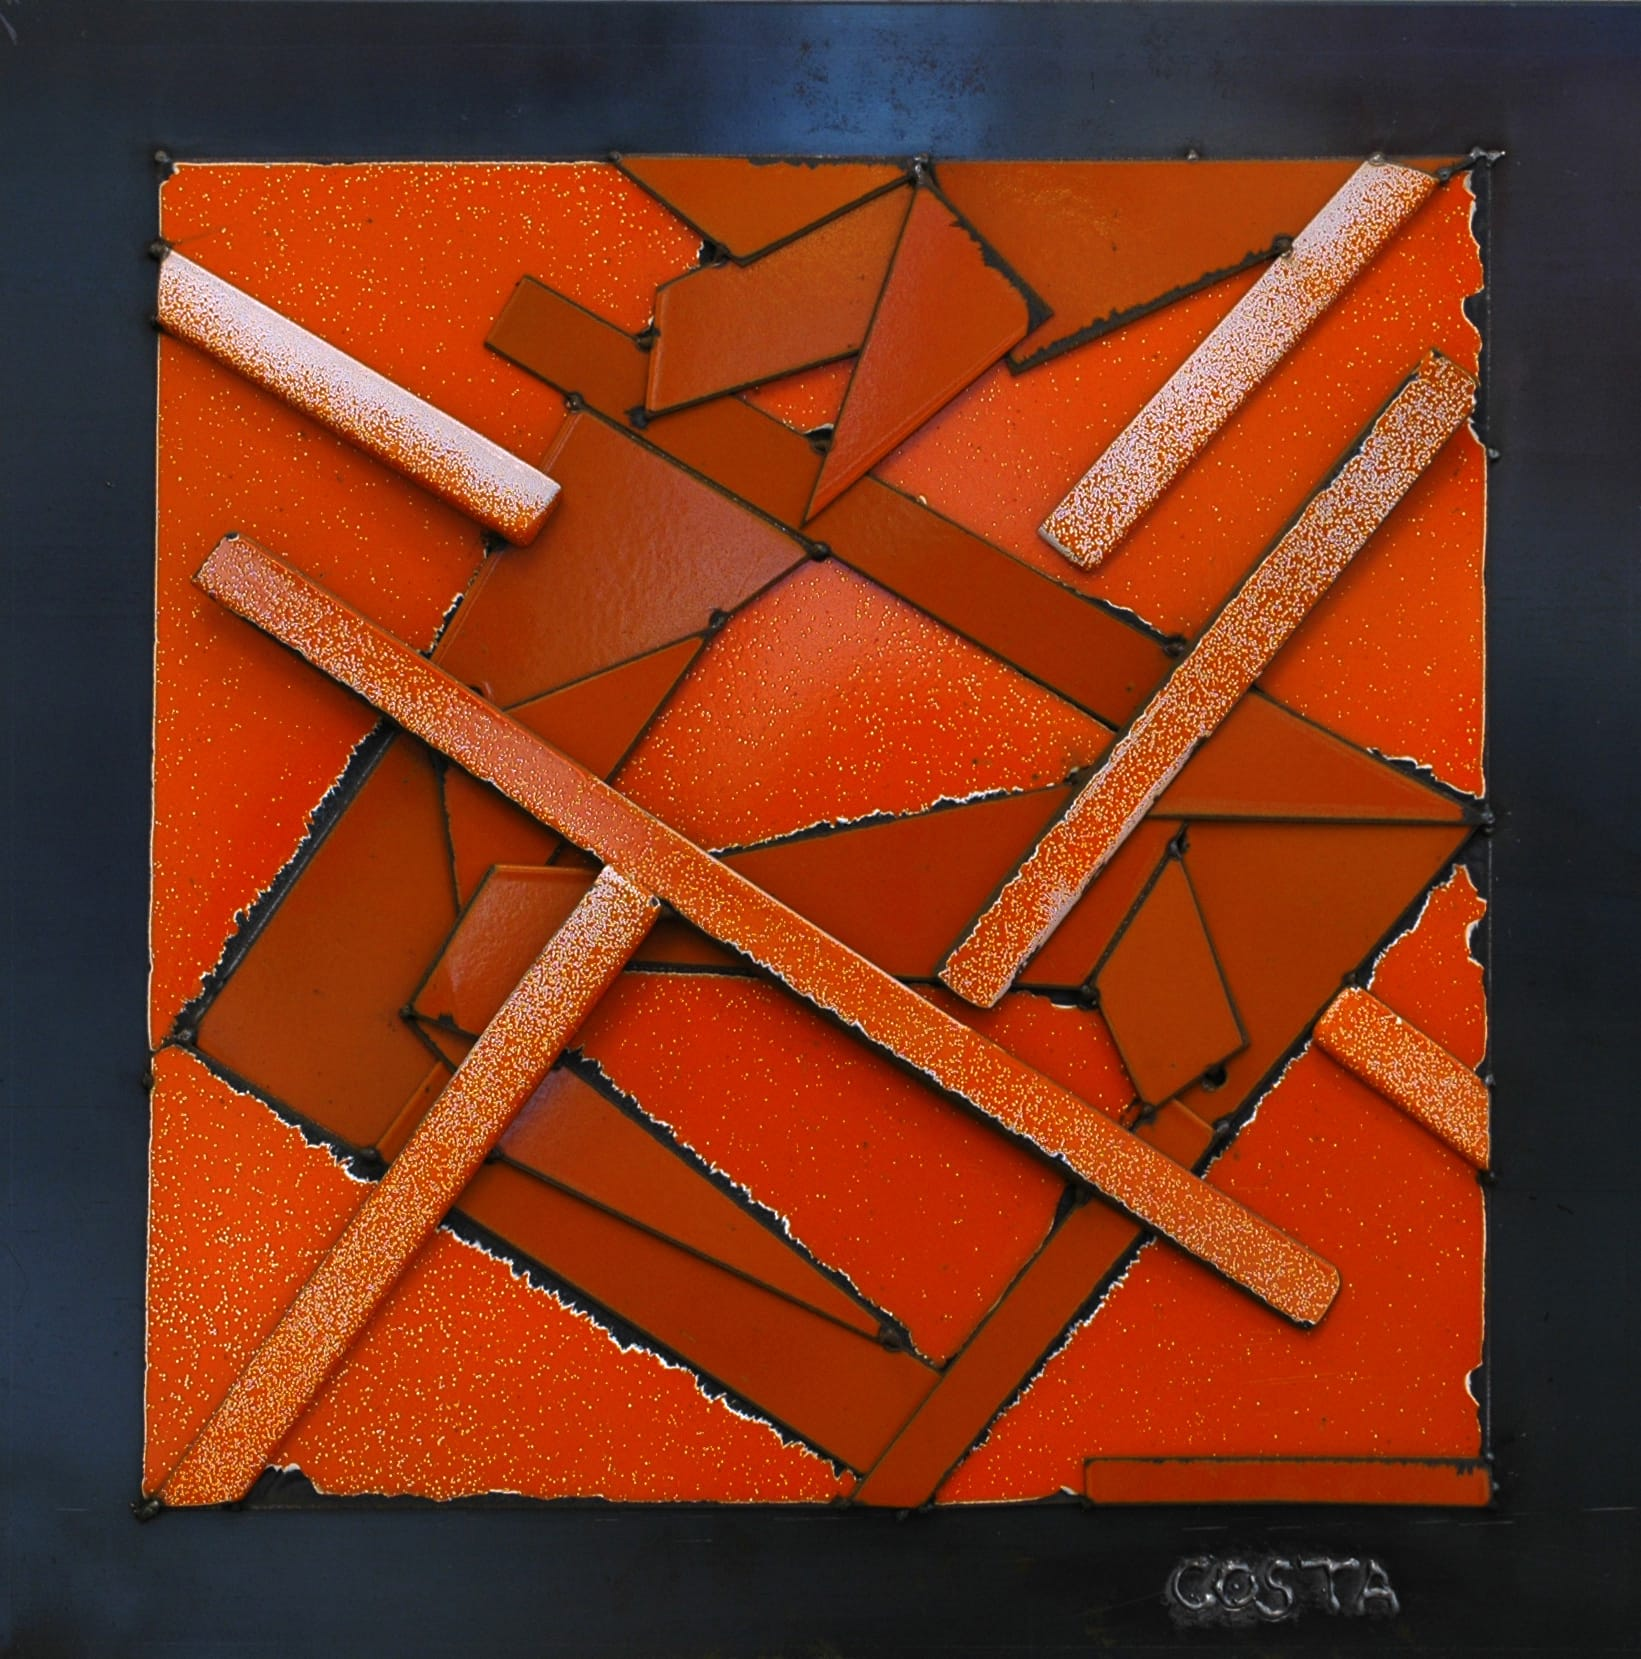 Galerie Art Jingle COSTA Orange 60 x 60 cm 2021